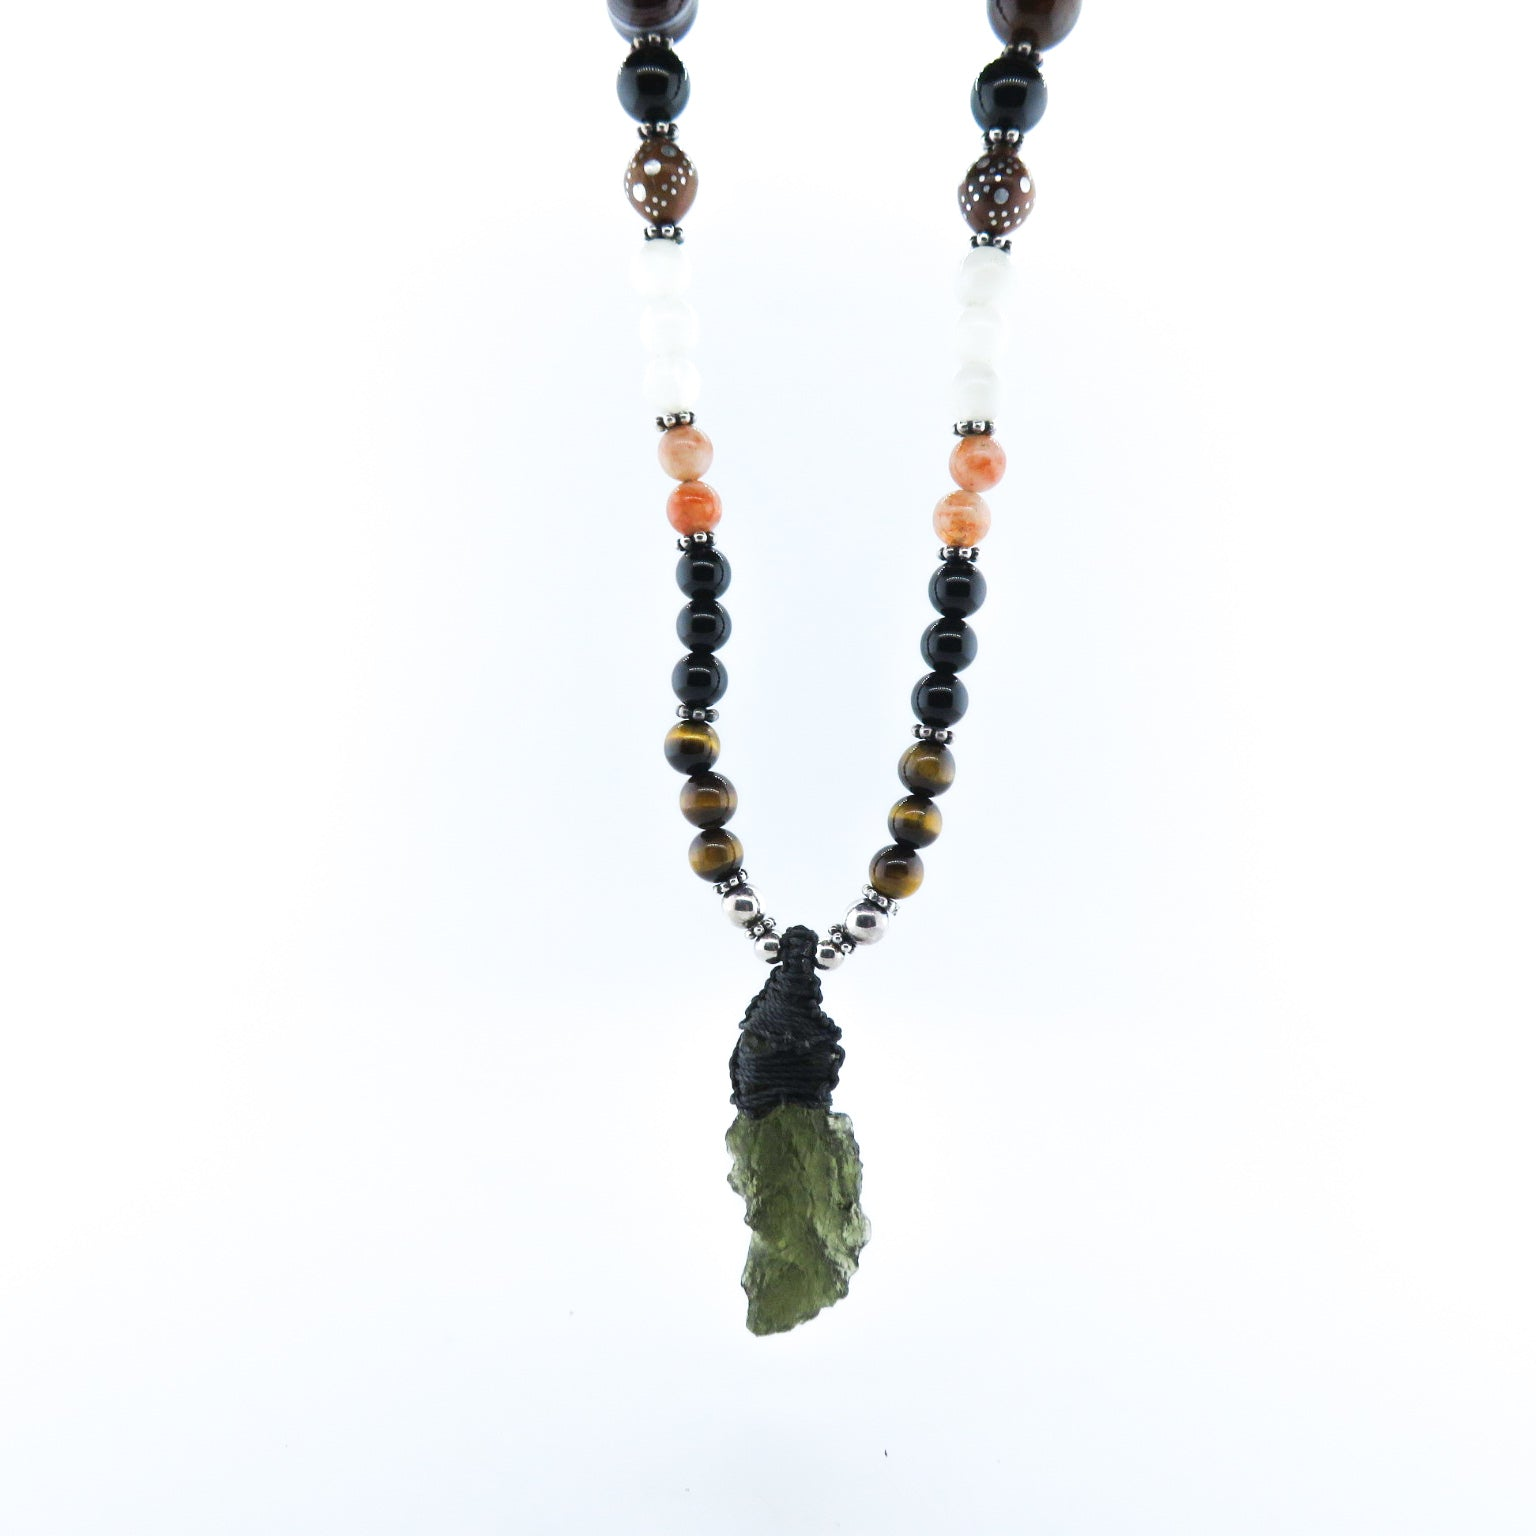 Moldavite Necklace with Tiger's Eye, Agate, Rainbow Moon Stone, Sun Stone, Onyx and Silver Beads